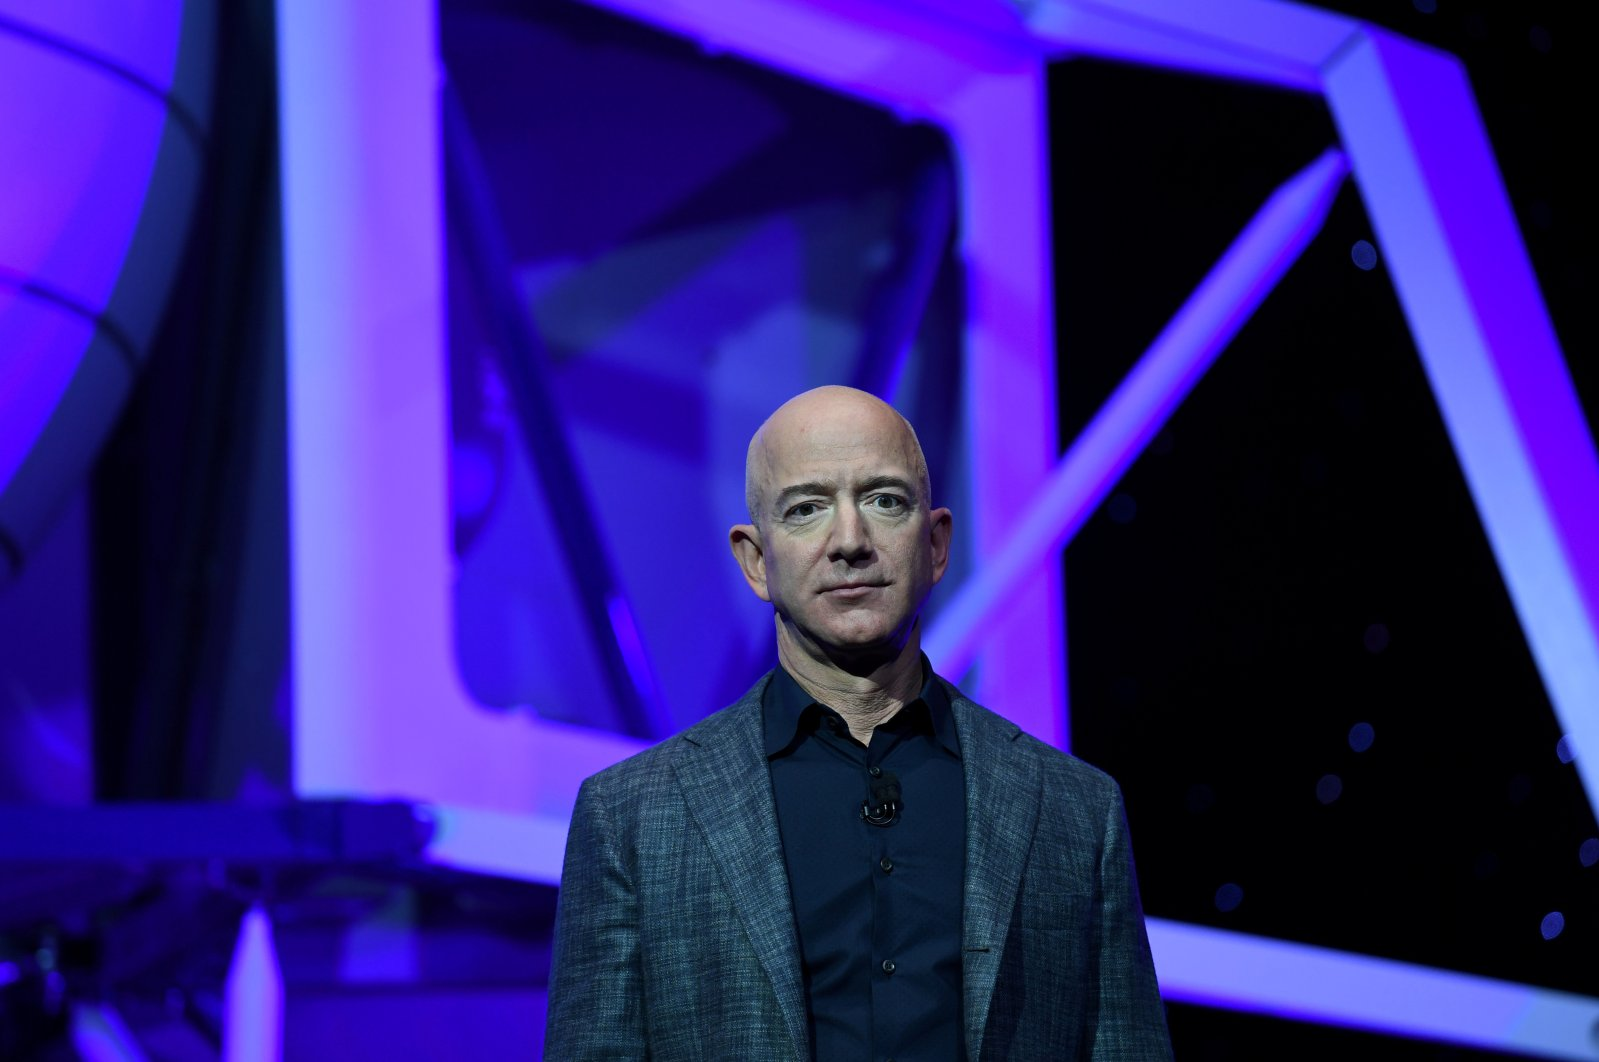 Founder, Chairman, CEO and President of Amazon Jeff Bezos unveils his space company Blue Origin's space exploration lunar lander rocket called Blue Moon during an unveiling event in Washington, U.S., May 9, 2019. (Reuters Photo)